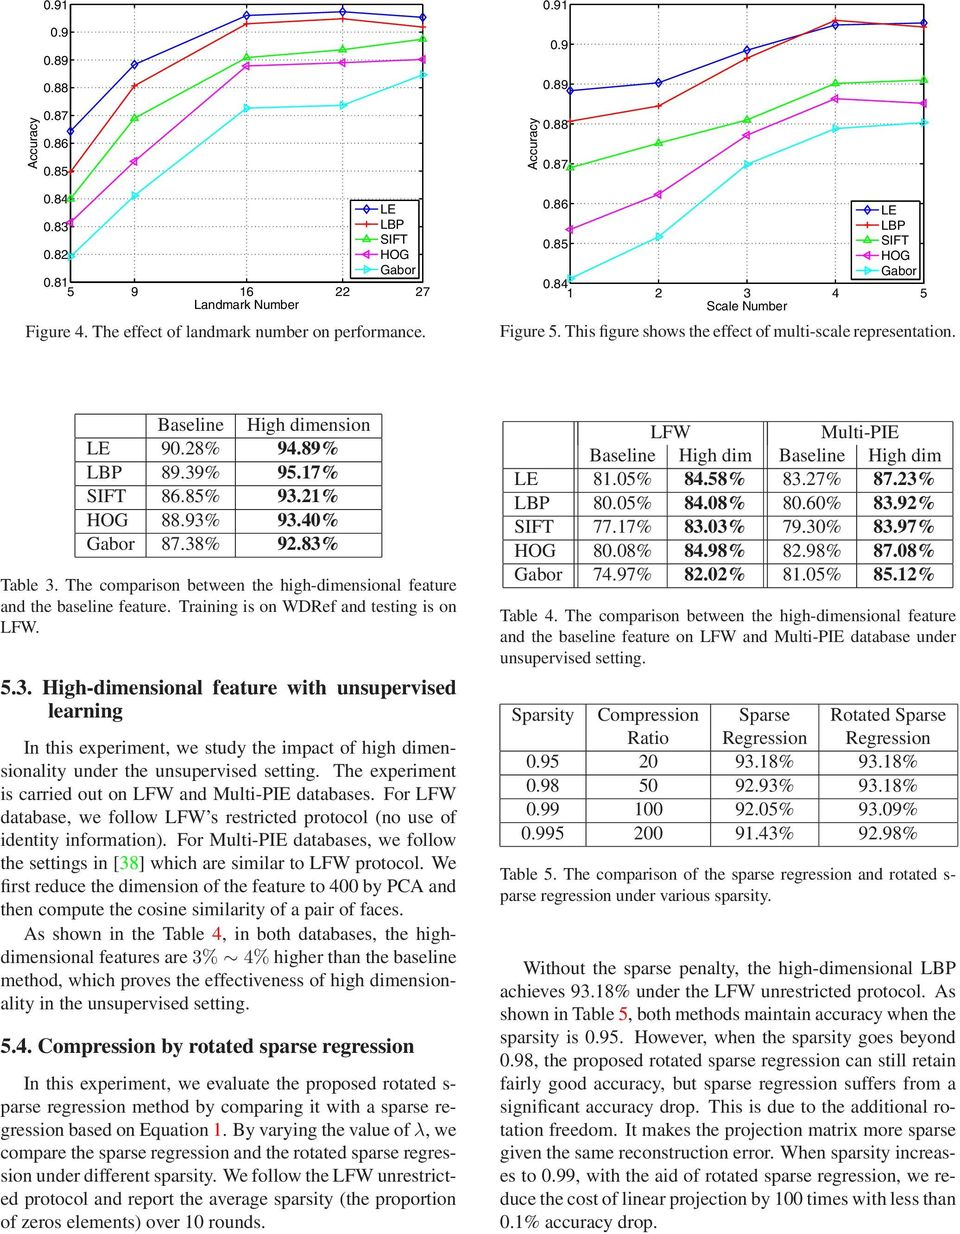 21% HOG 88.93% 93.40% Gabor 87.38% 92.83% Table 3. The comparison between the high-dimensional feature and the baseline feature. Training is on WDRef and testing is on LFW. 5.3. High-dimensional feature with unsupervised learning In this experiment, we study the impact of high dimensionality under the unsupervised setting.